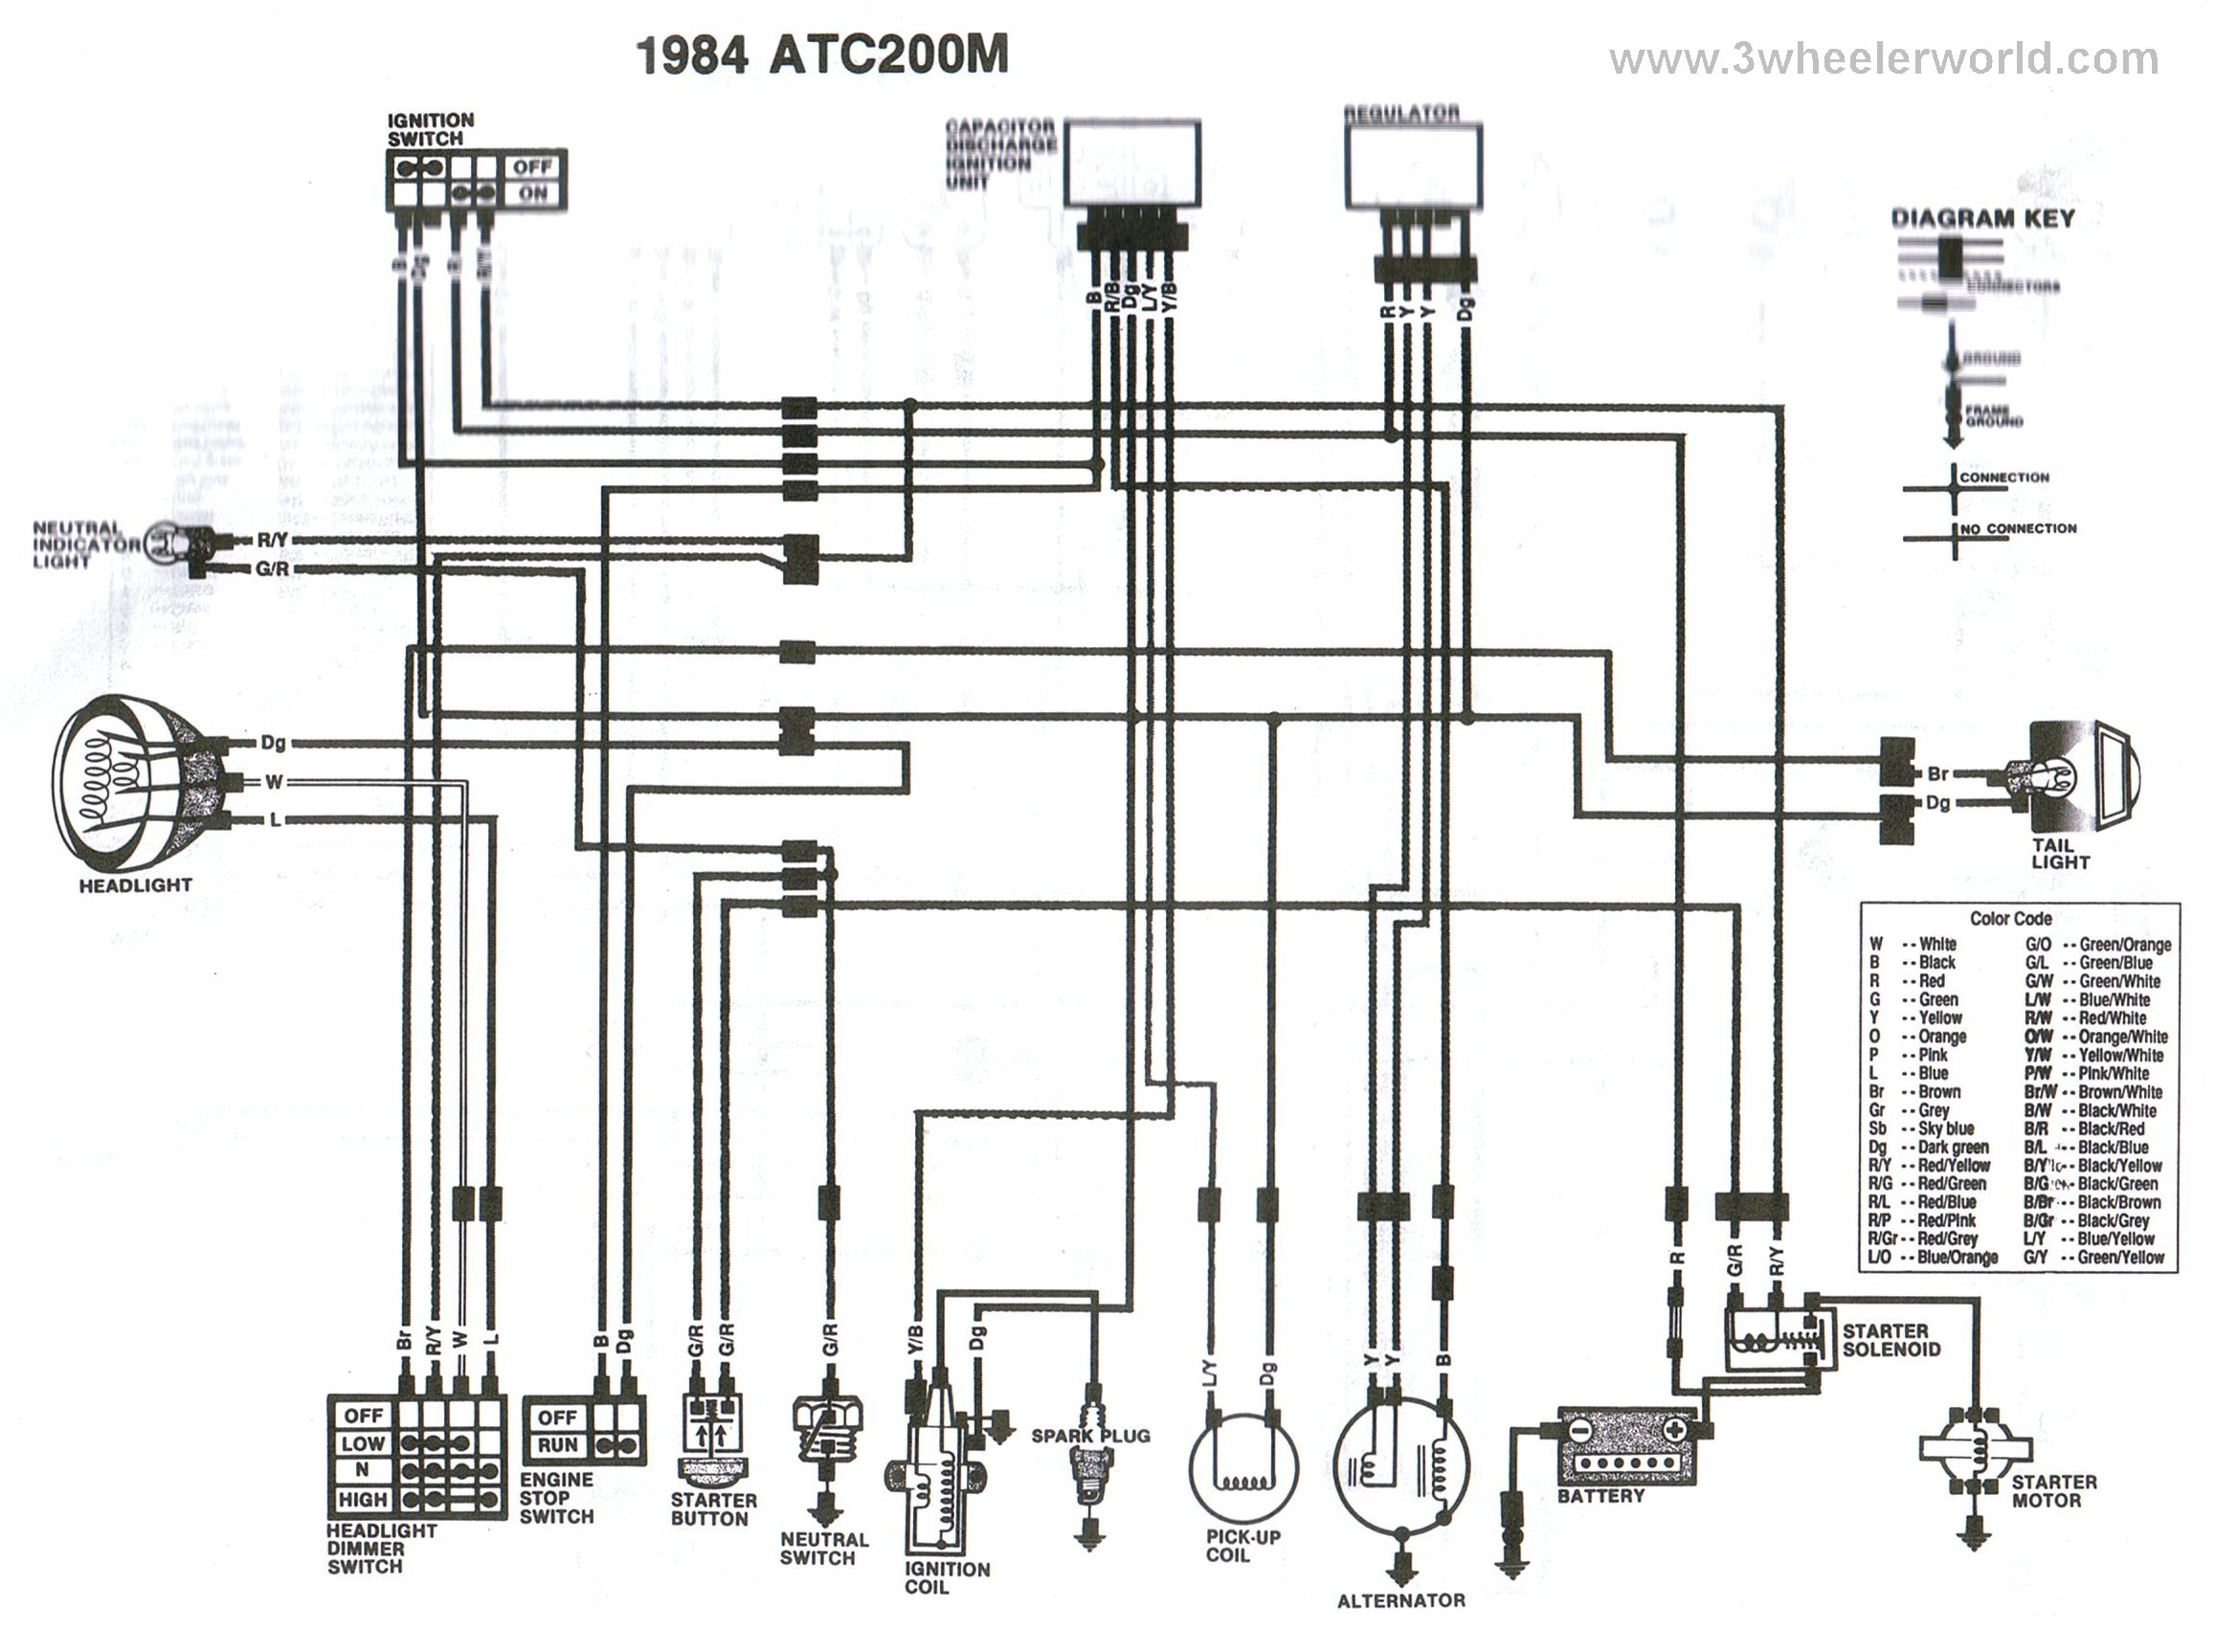 1985 honda 200m wiring diagram